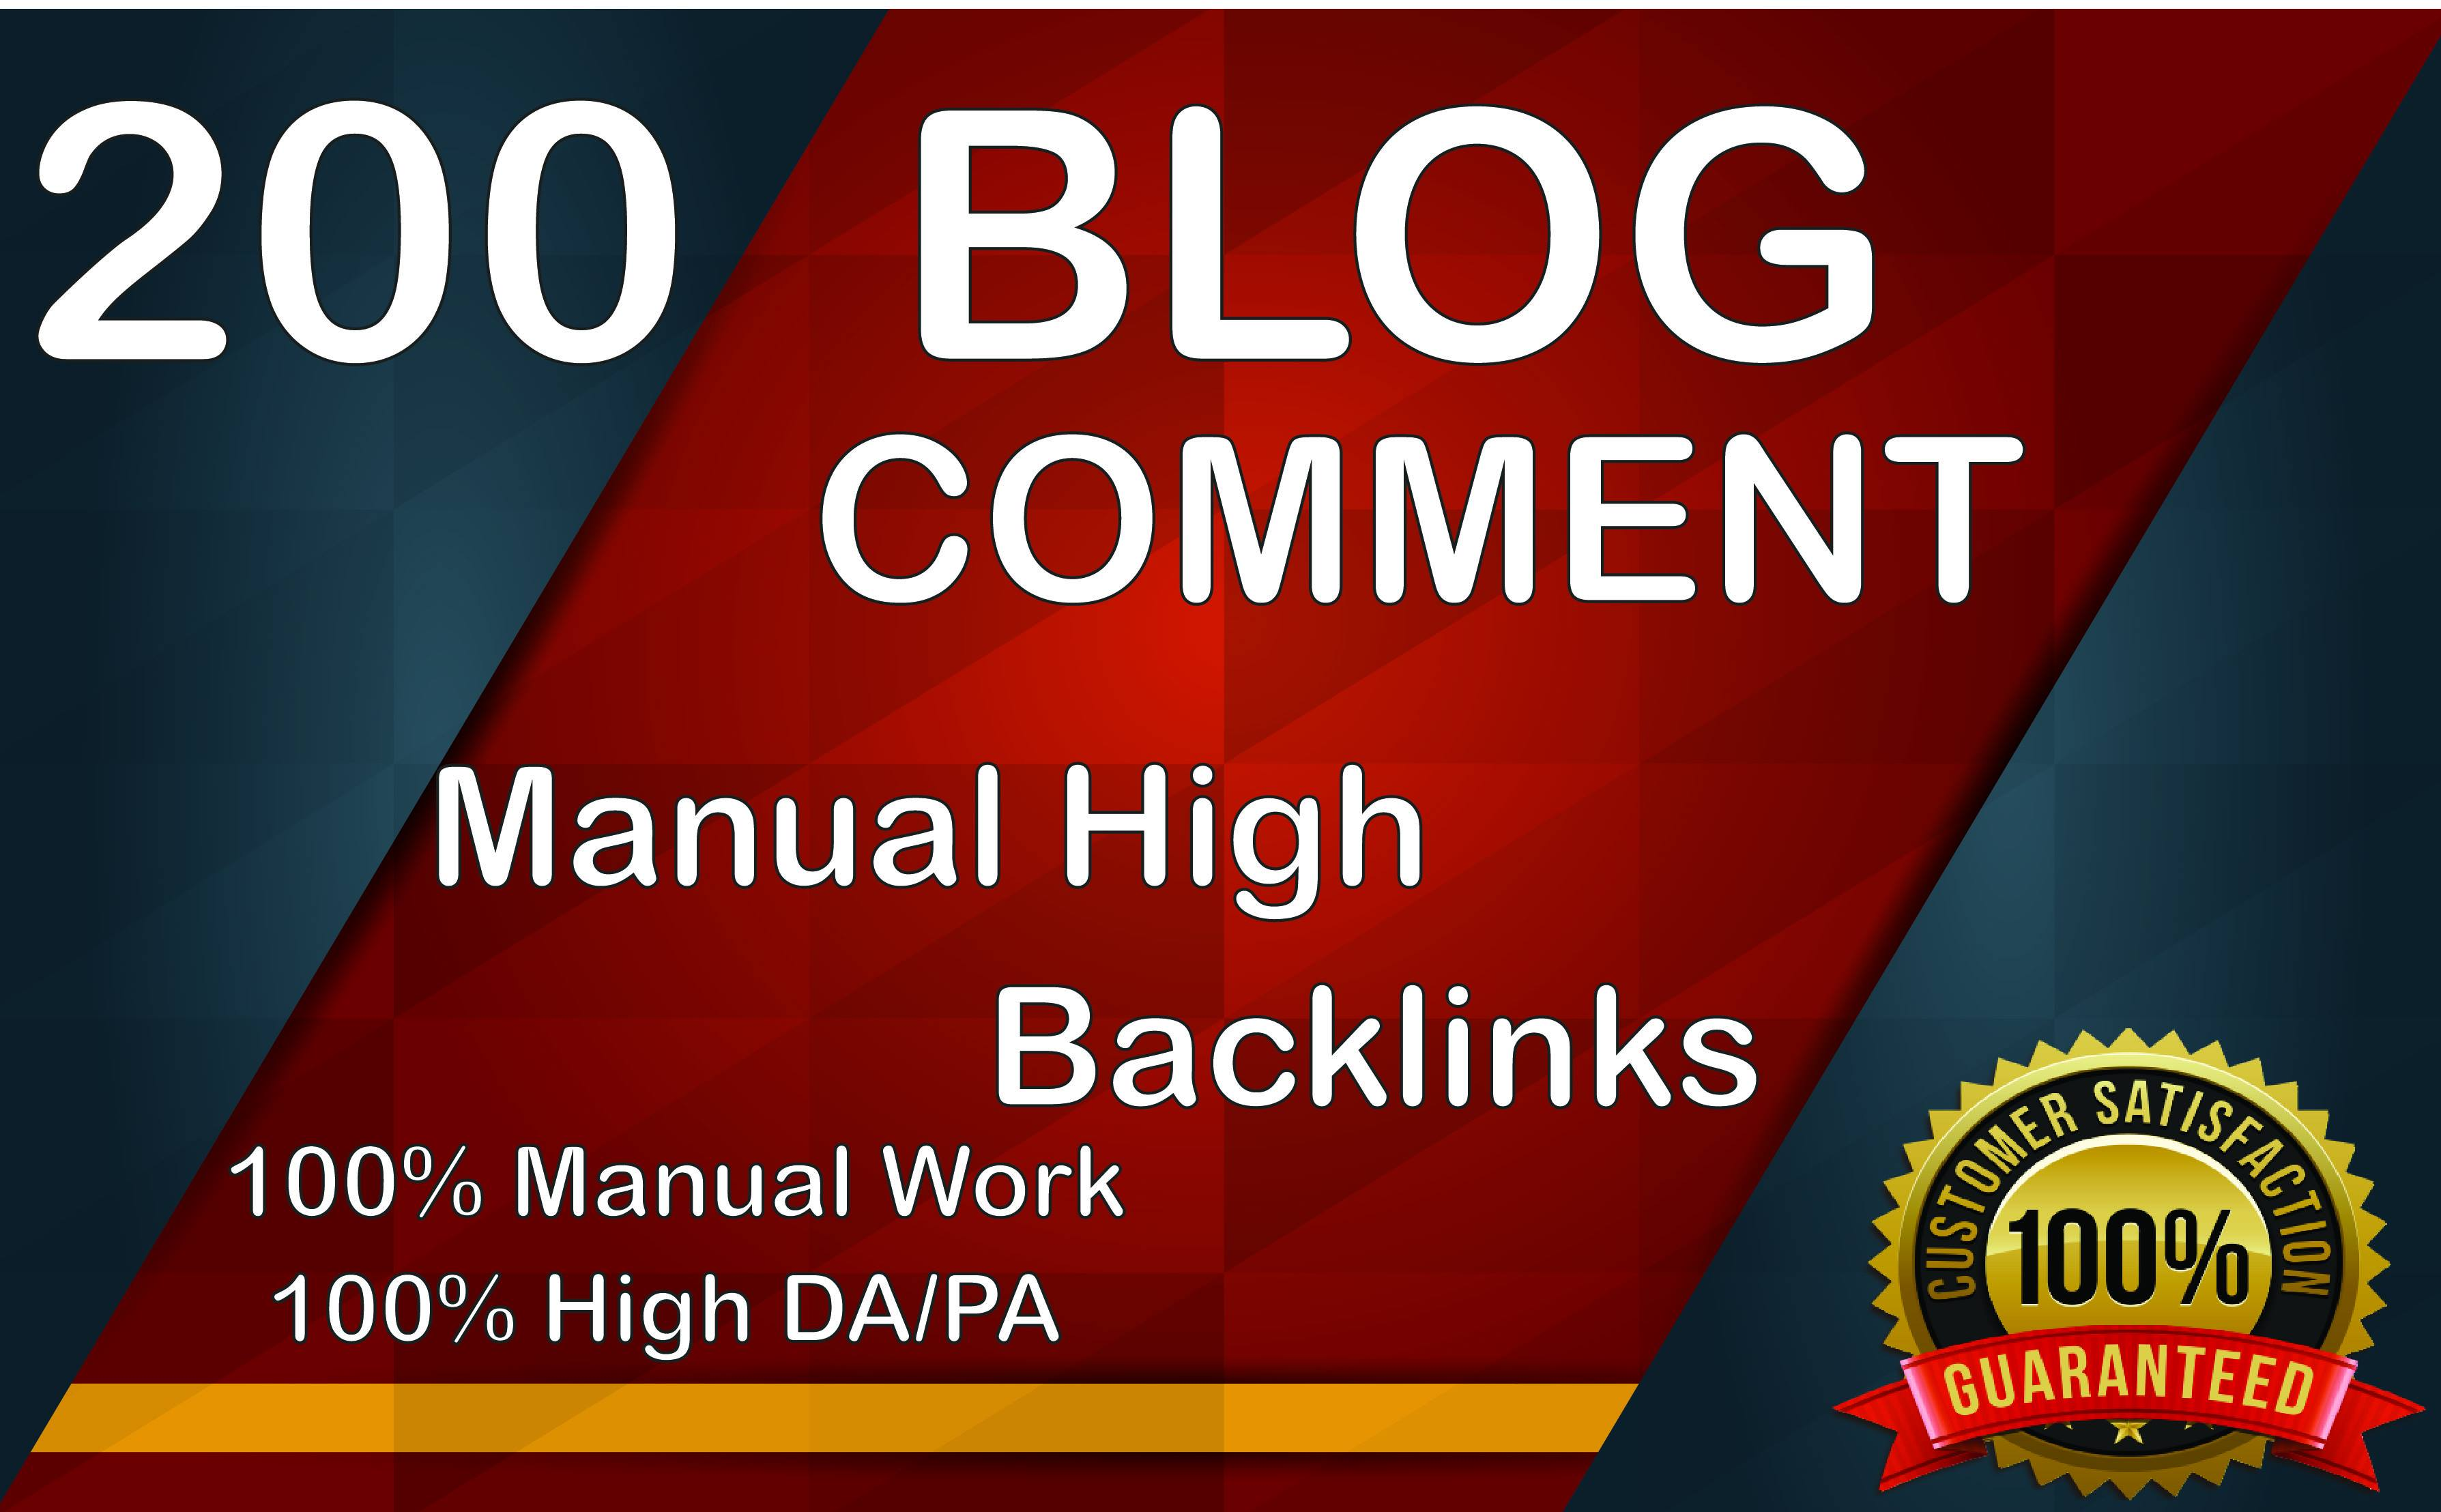 Do 200 Blog Comment Manual High Quality Backlink For Increasing Your Google Ranking